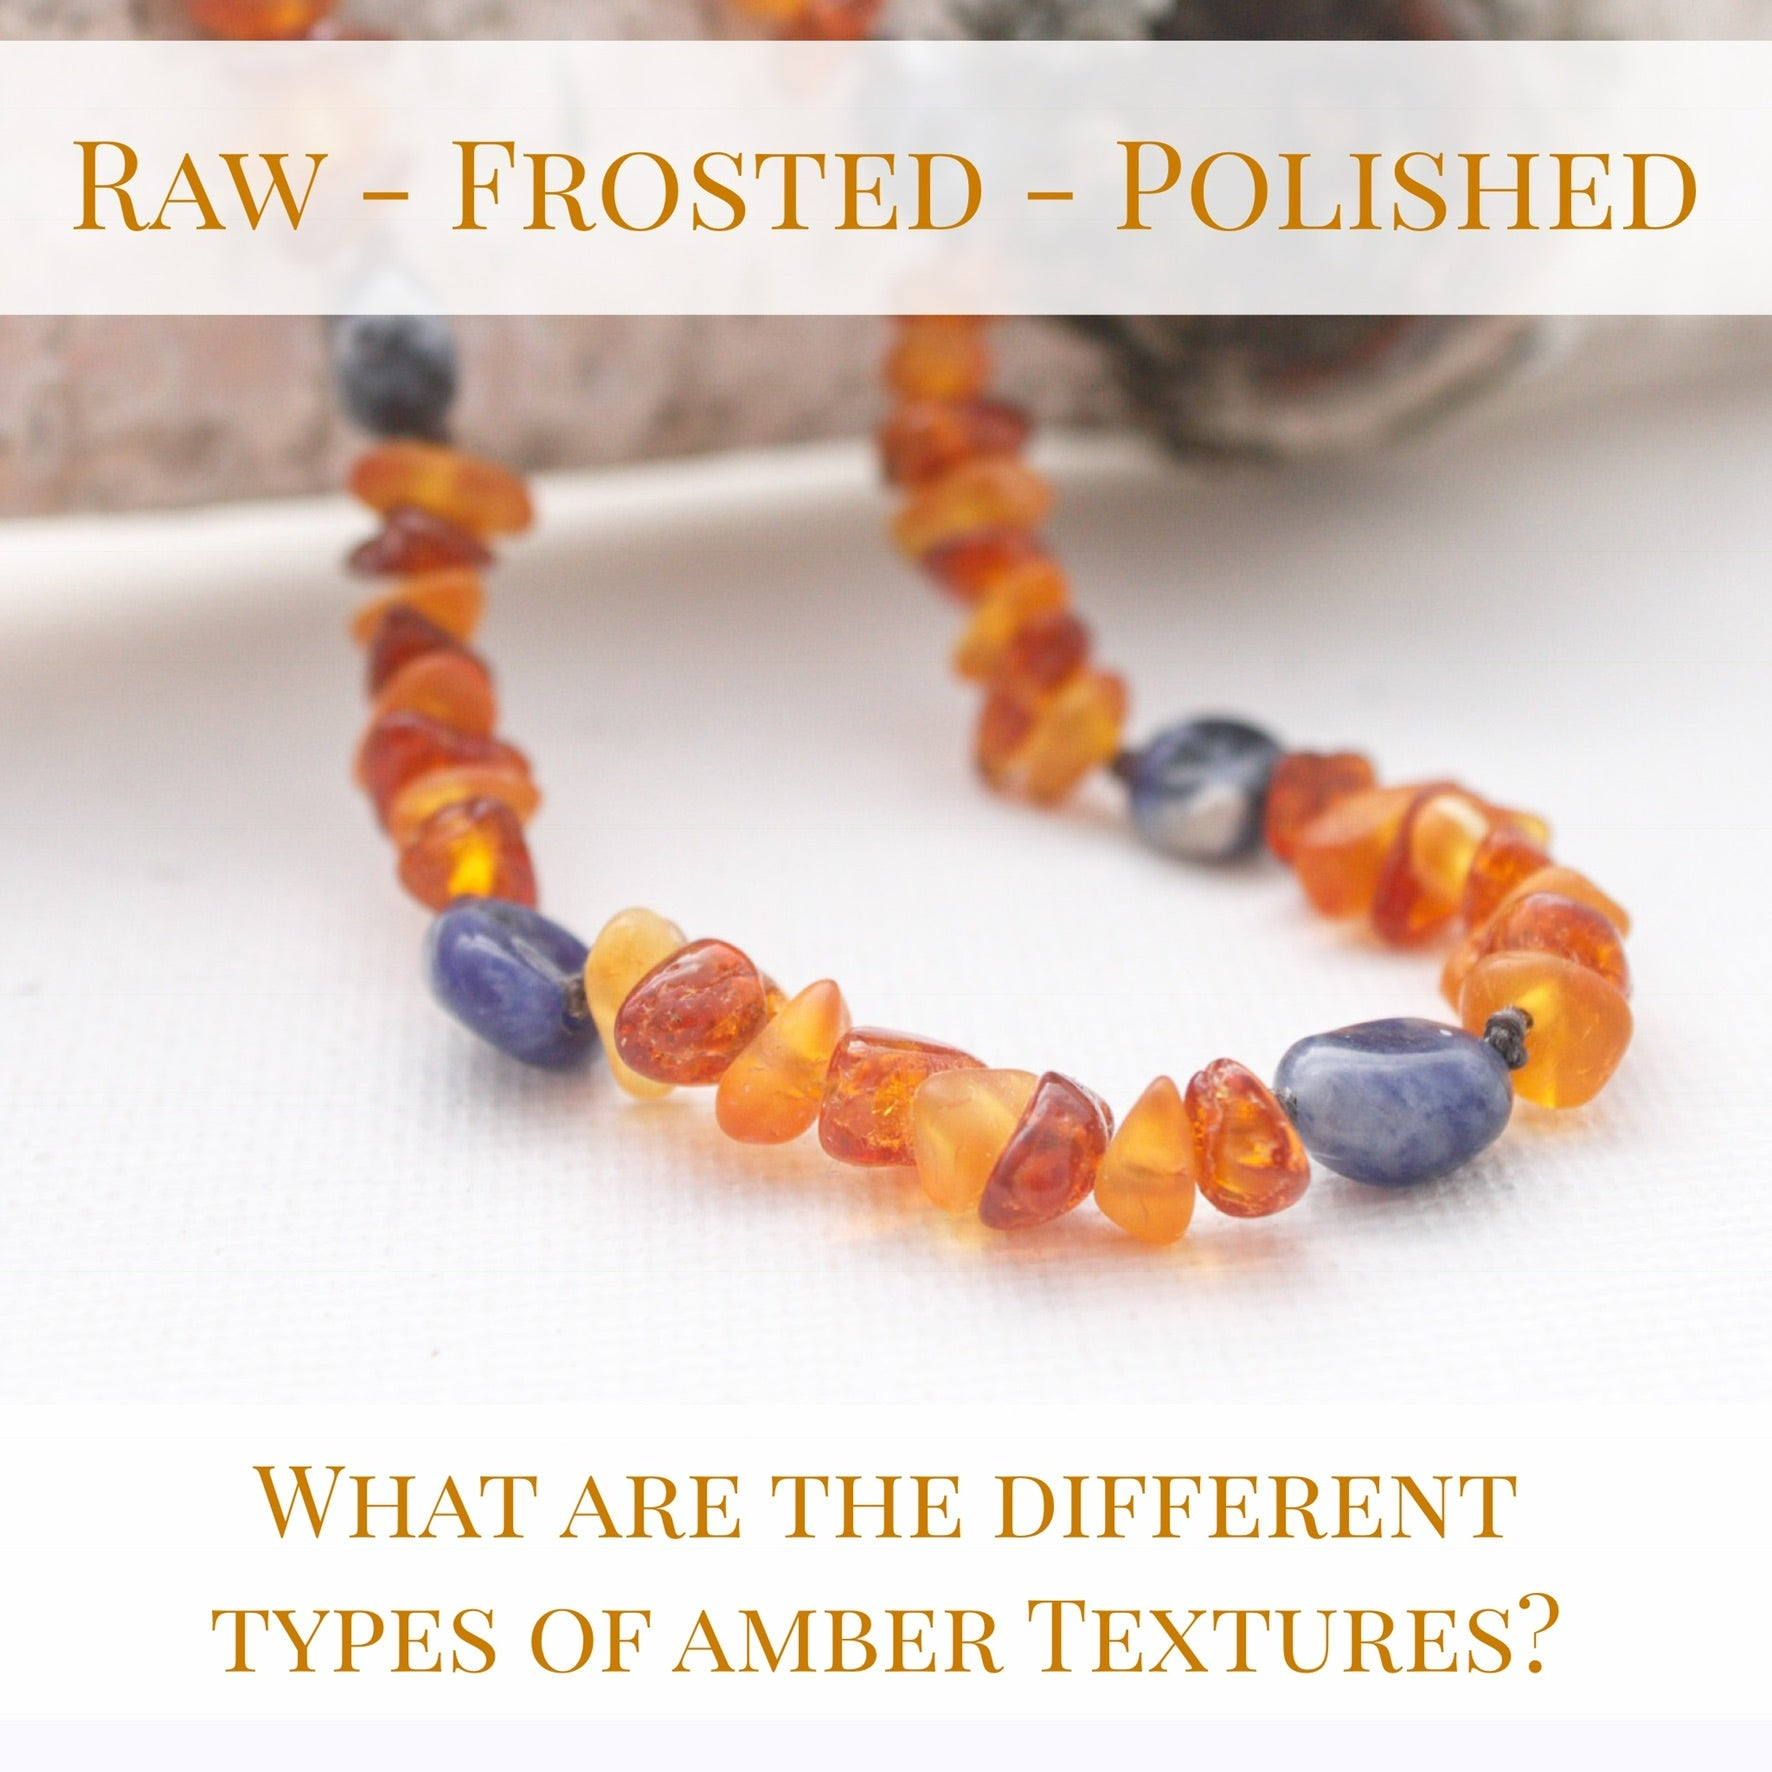 What are the different types of Amber textures? Raw - Frosted - Polished